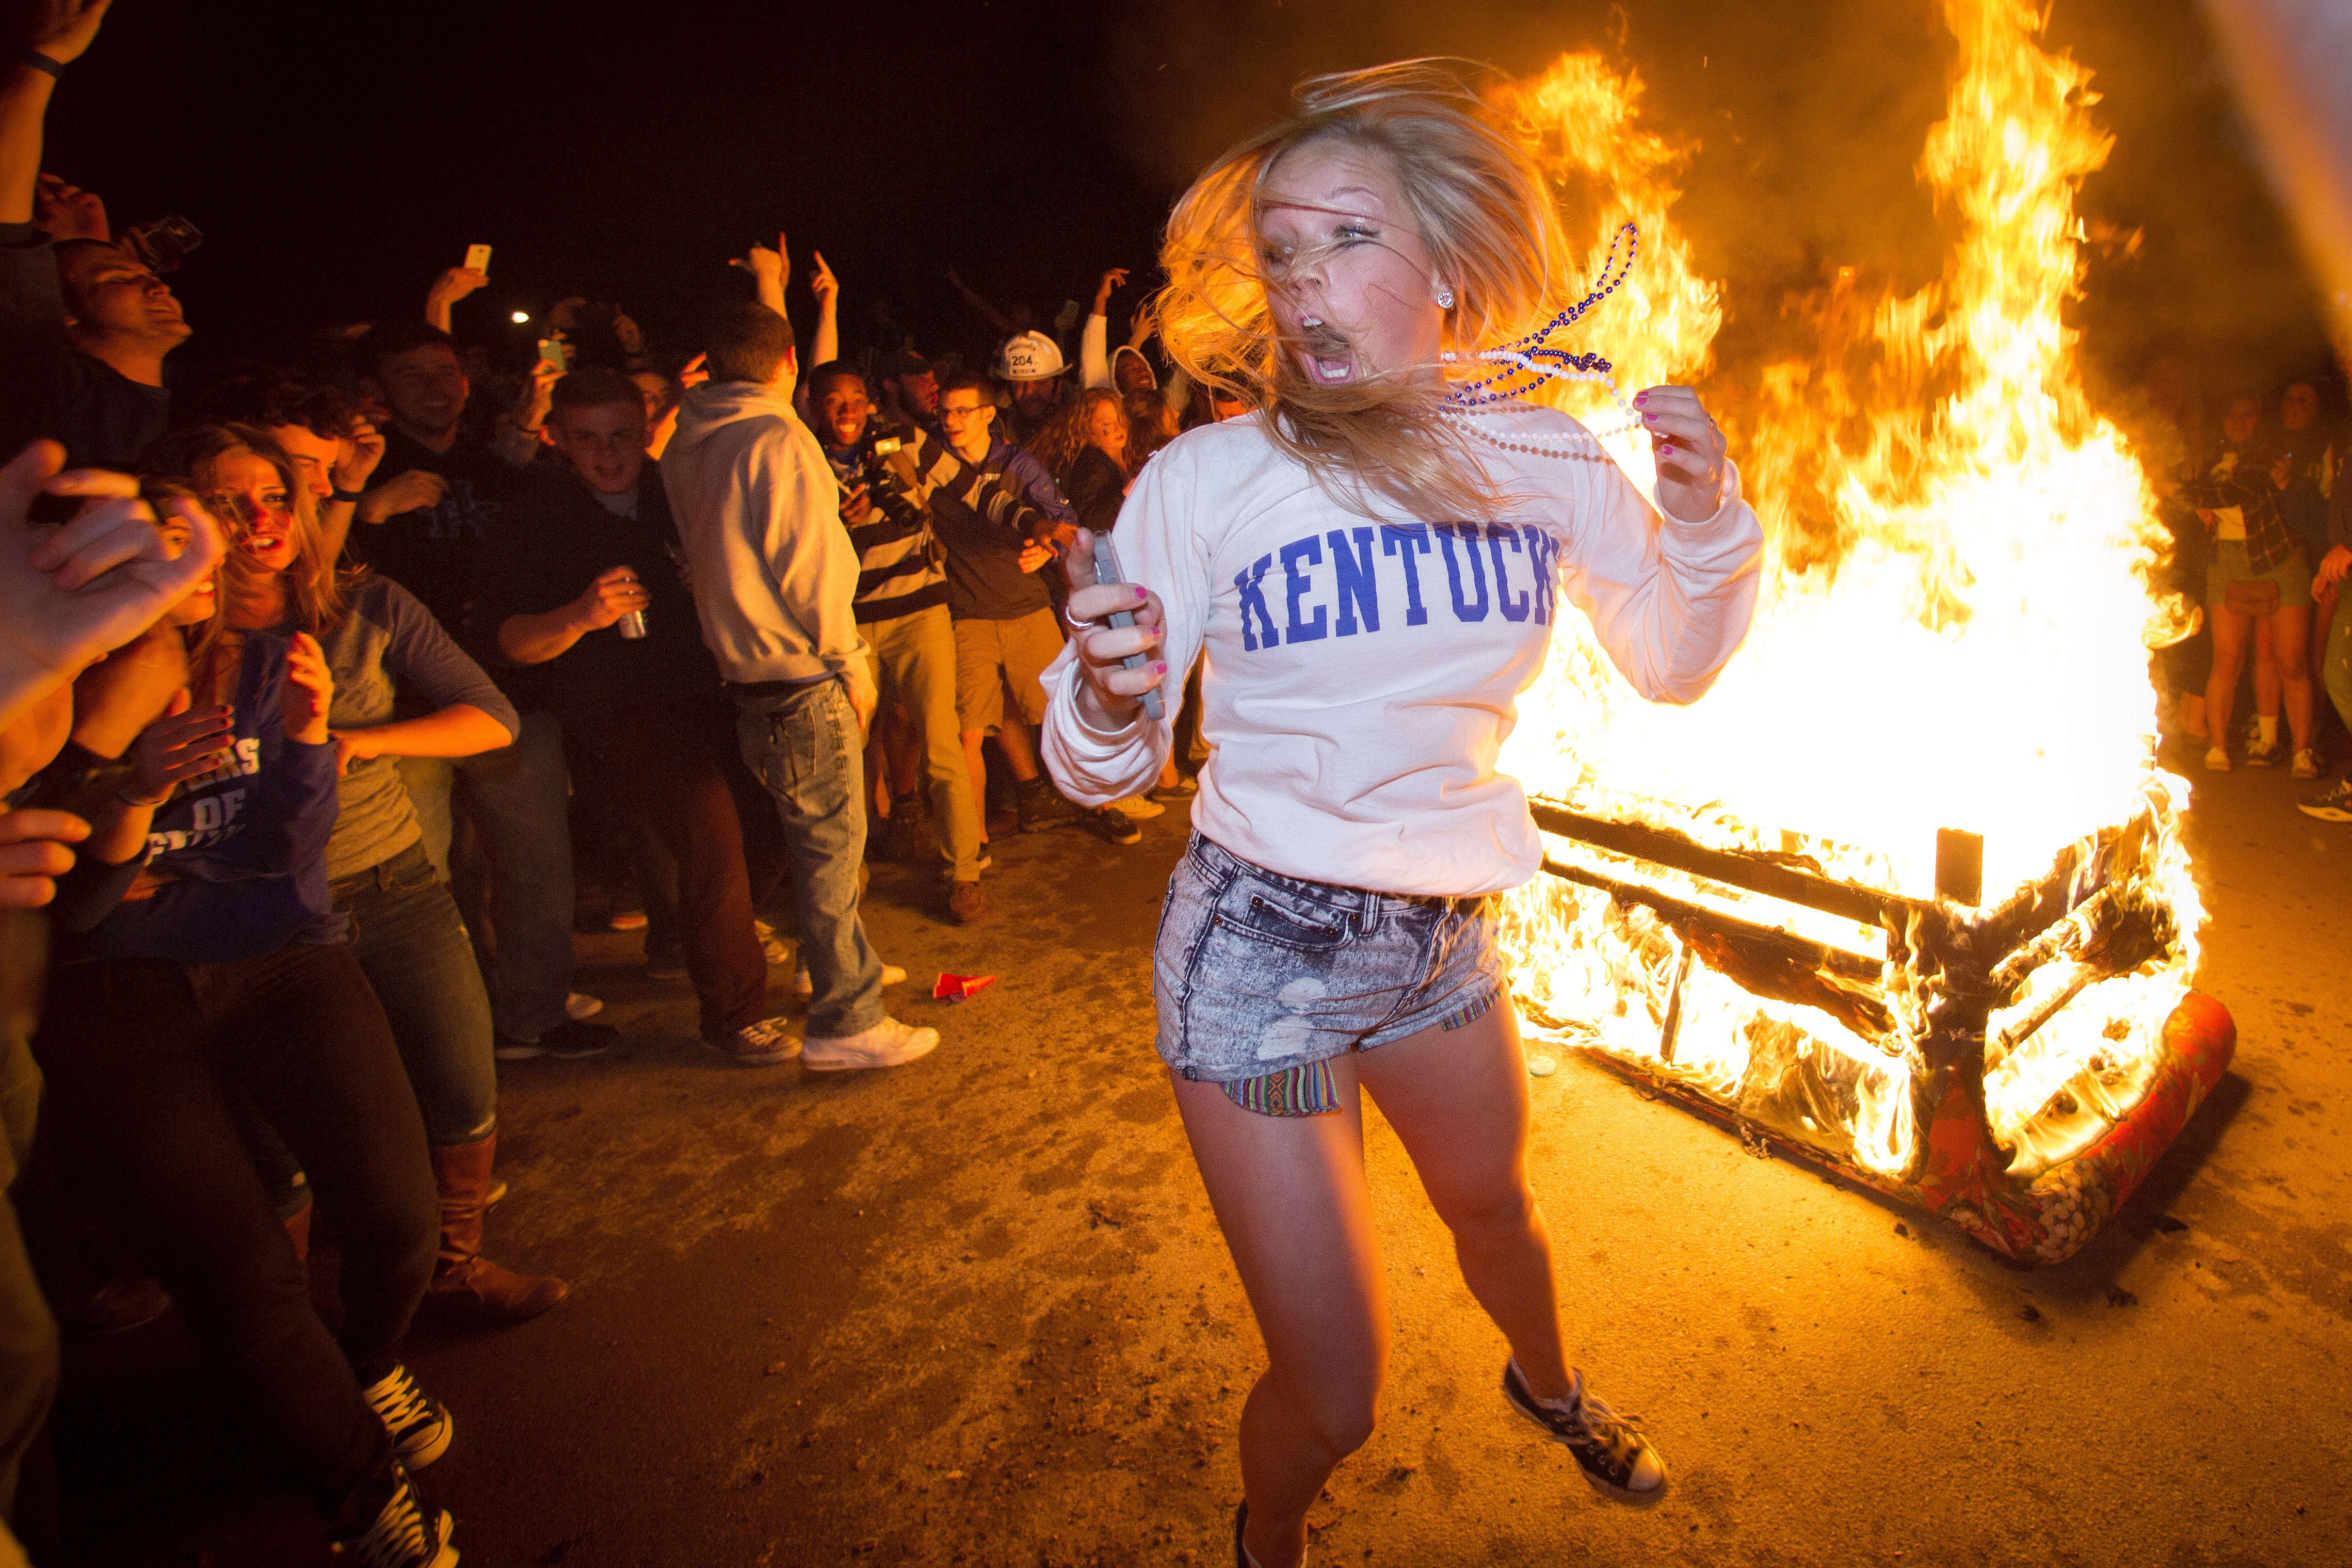 University of Kentucky fans celebrate on State Street after their team's come from behind victory over the University of Louisville to advance to the Elite 8 in the NCAA Men's Basketball Tournament on March 28, 2014.